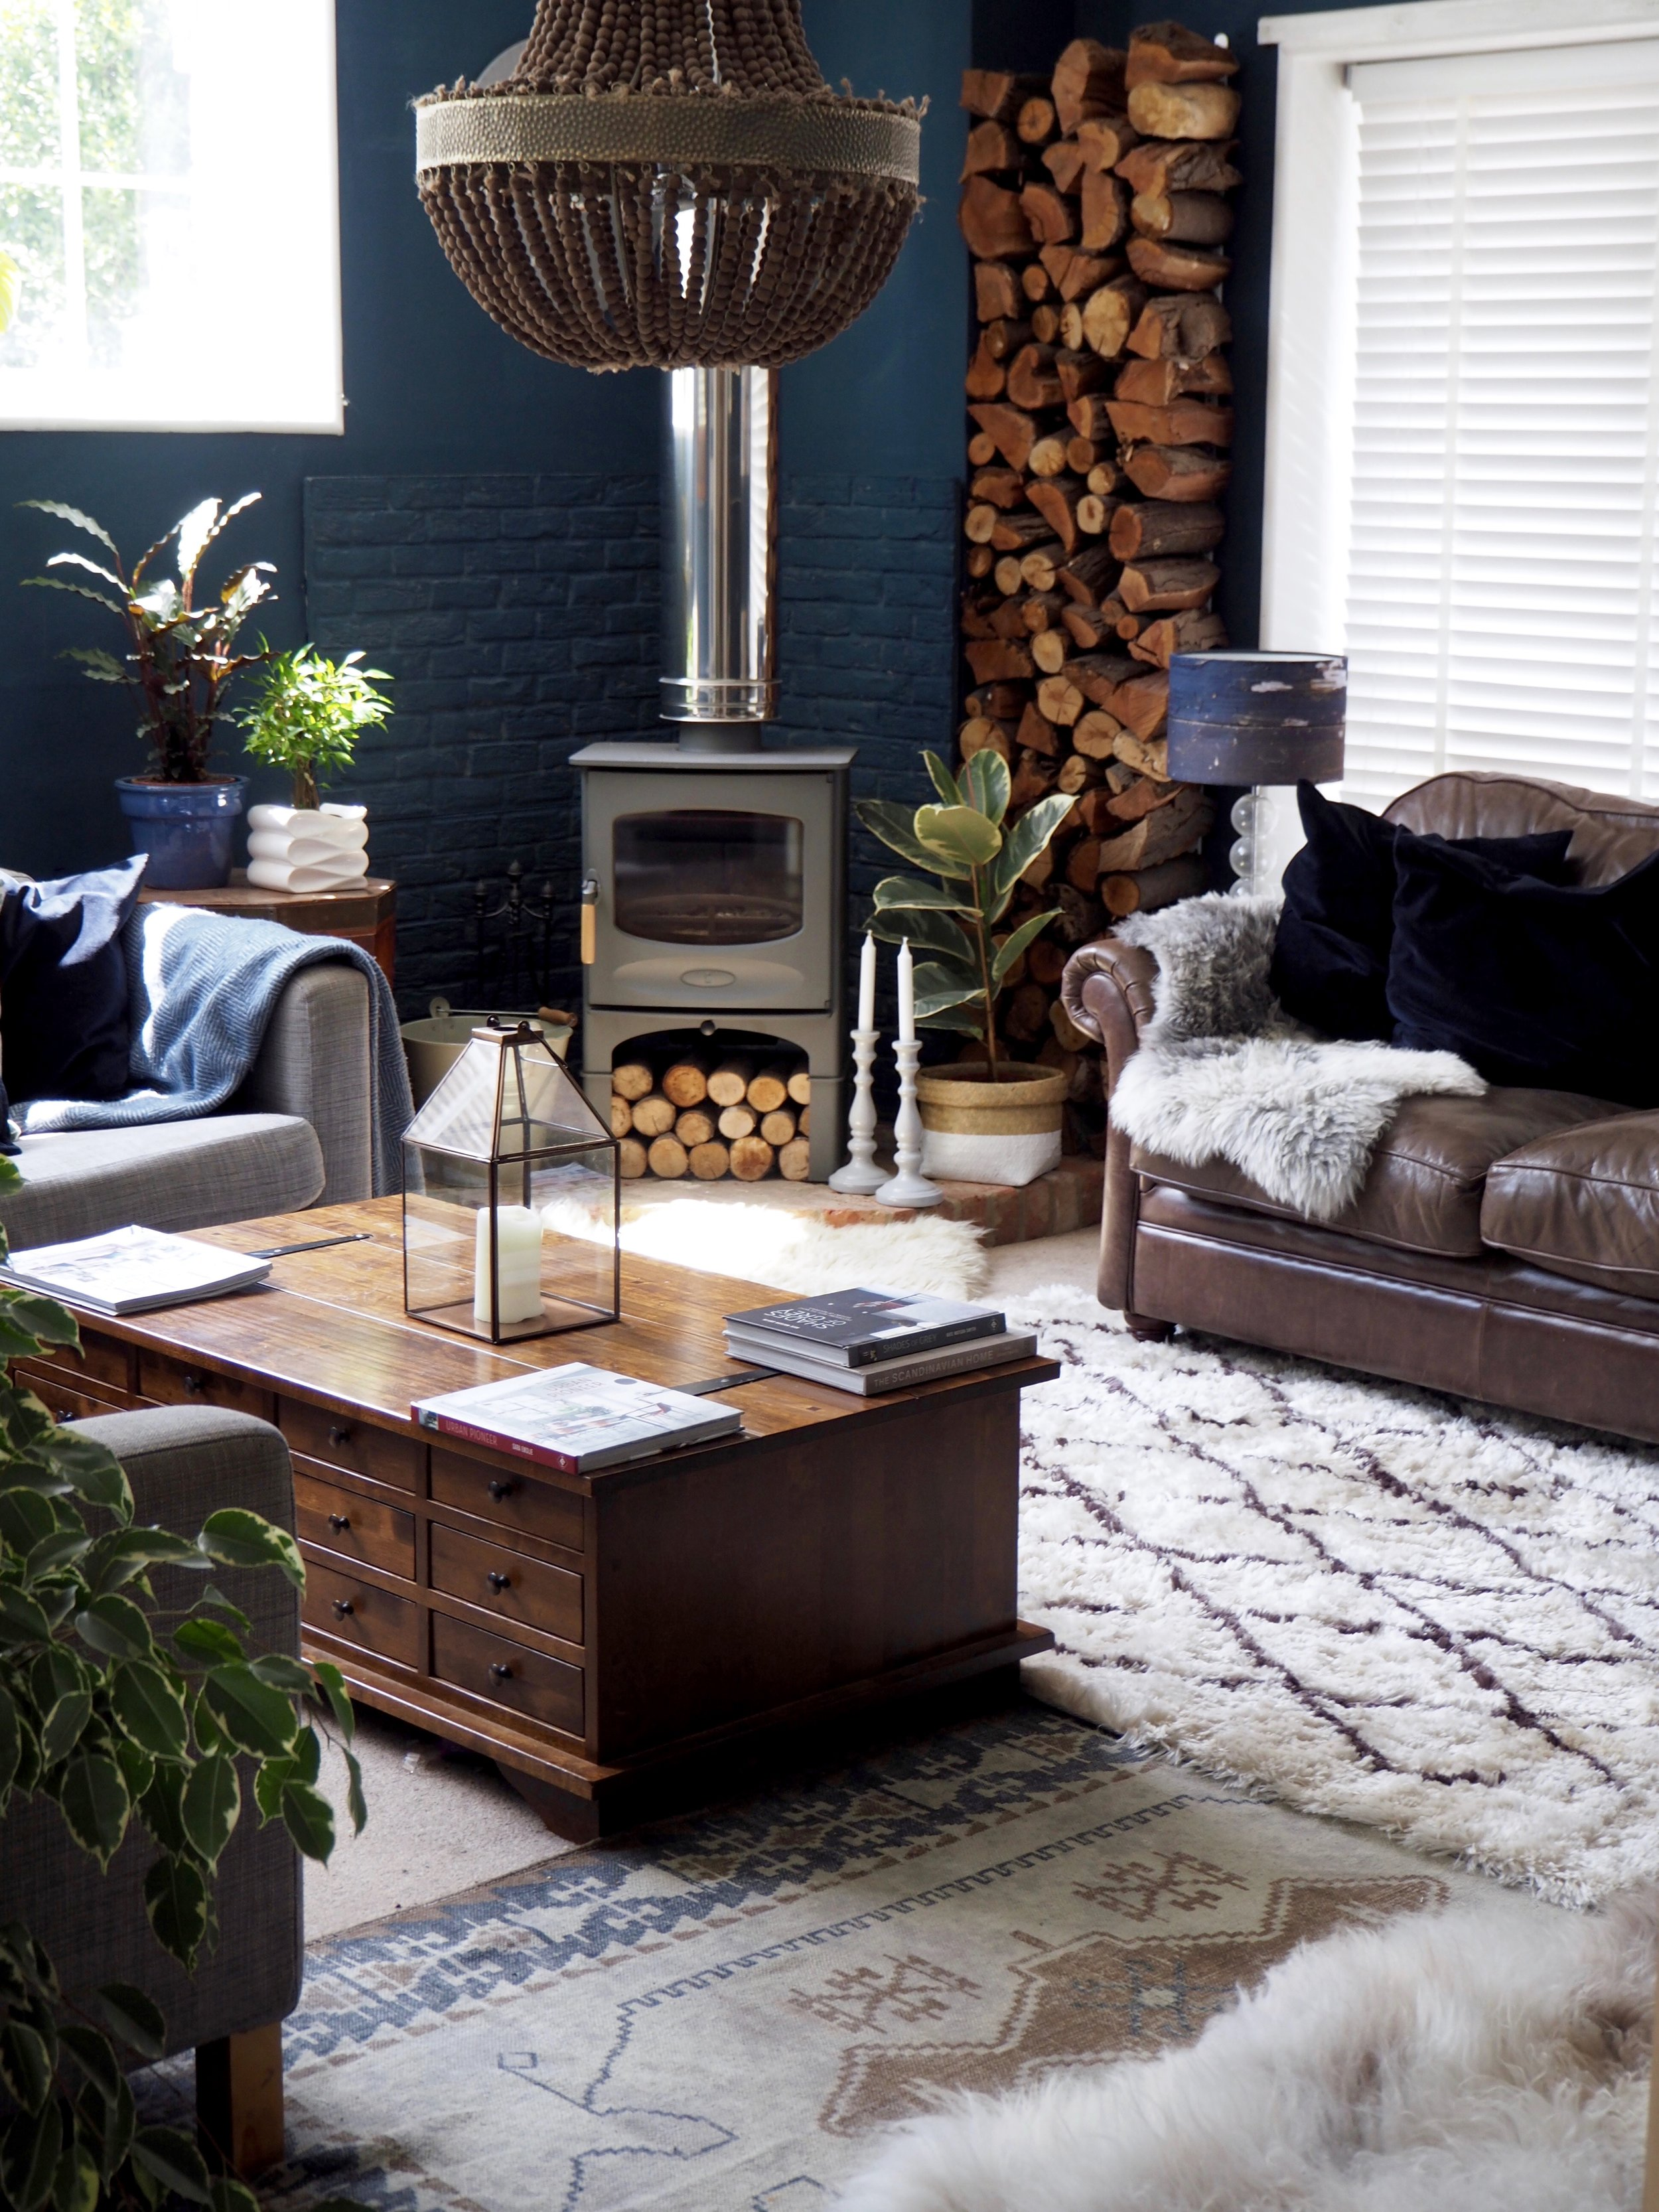 Sitting room  - walls Farrow & Ball Hague Blue …… woodburner Charnwood stoves …… ceiling light Abigail Ahern…… butterfly print Donna Kelly @kelldon …..paterned rug French Connection …...blue velvet cushions Ikea